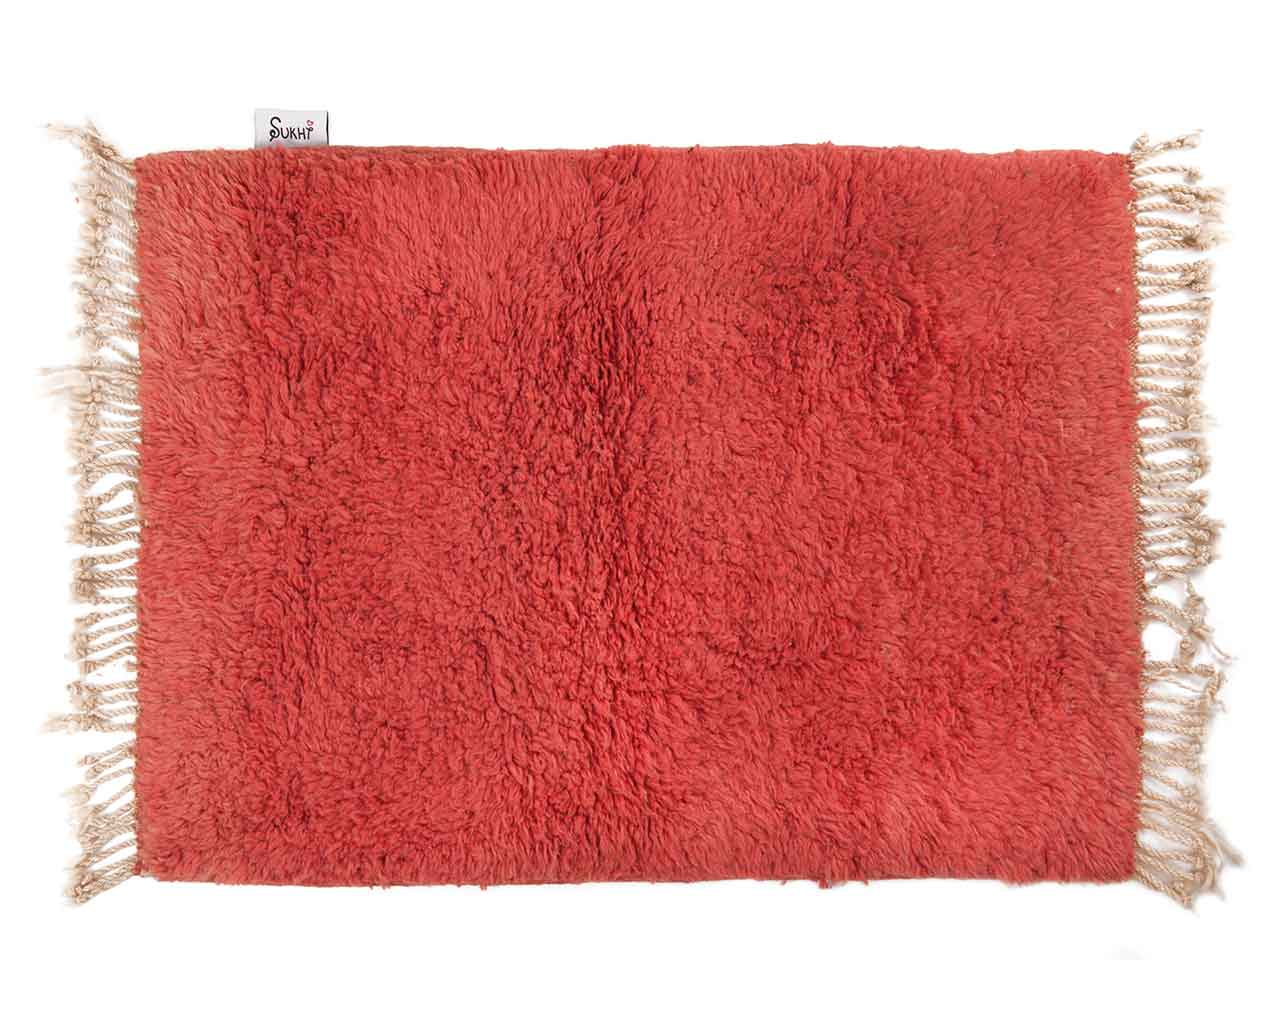 pain berber carpet all colours sizes large and small 1